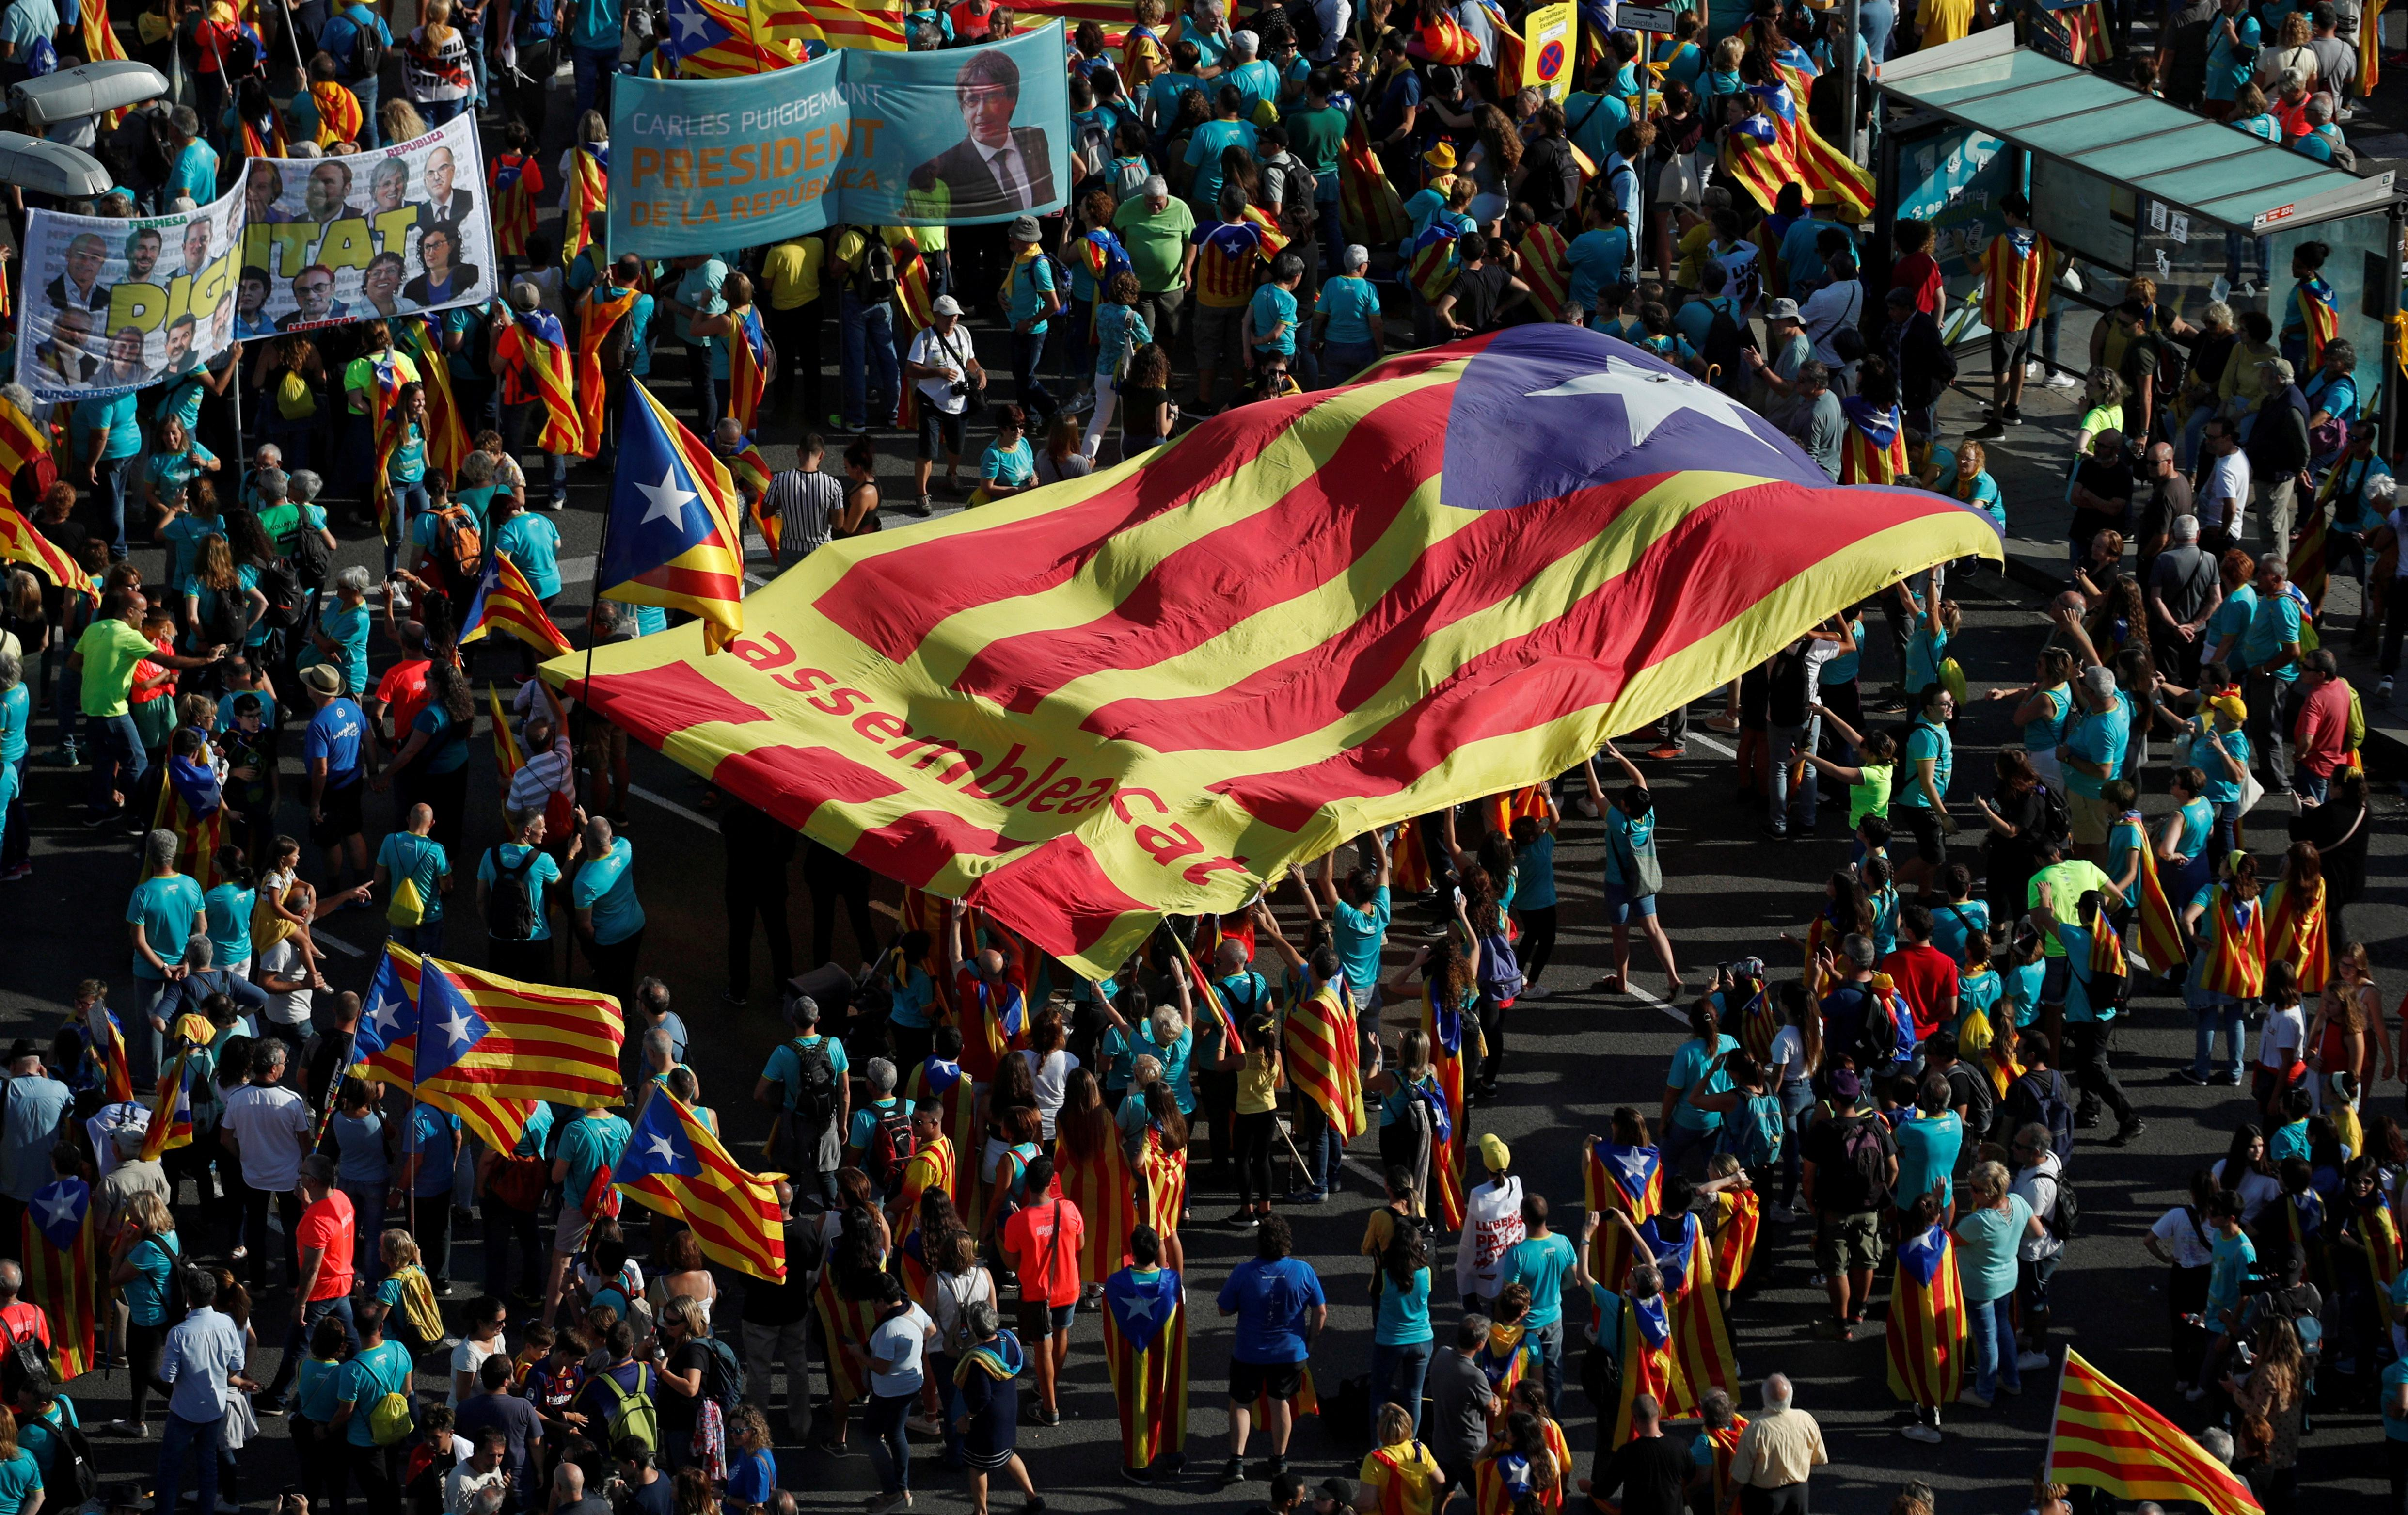 Catalan separatist leaders to get up to 15 years in jail - judicial...